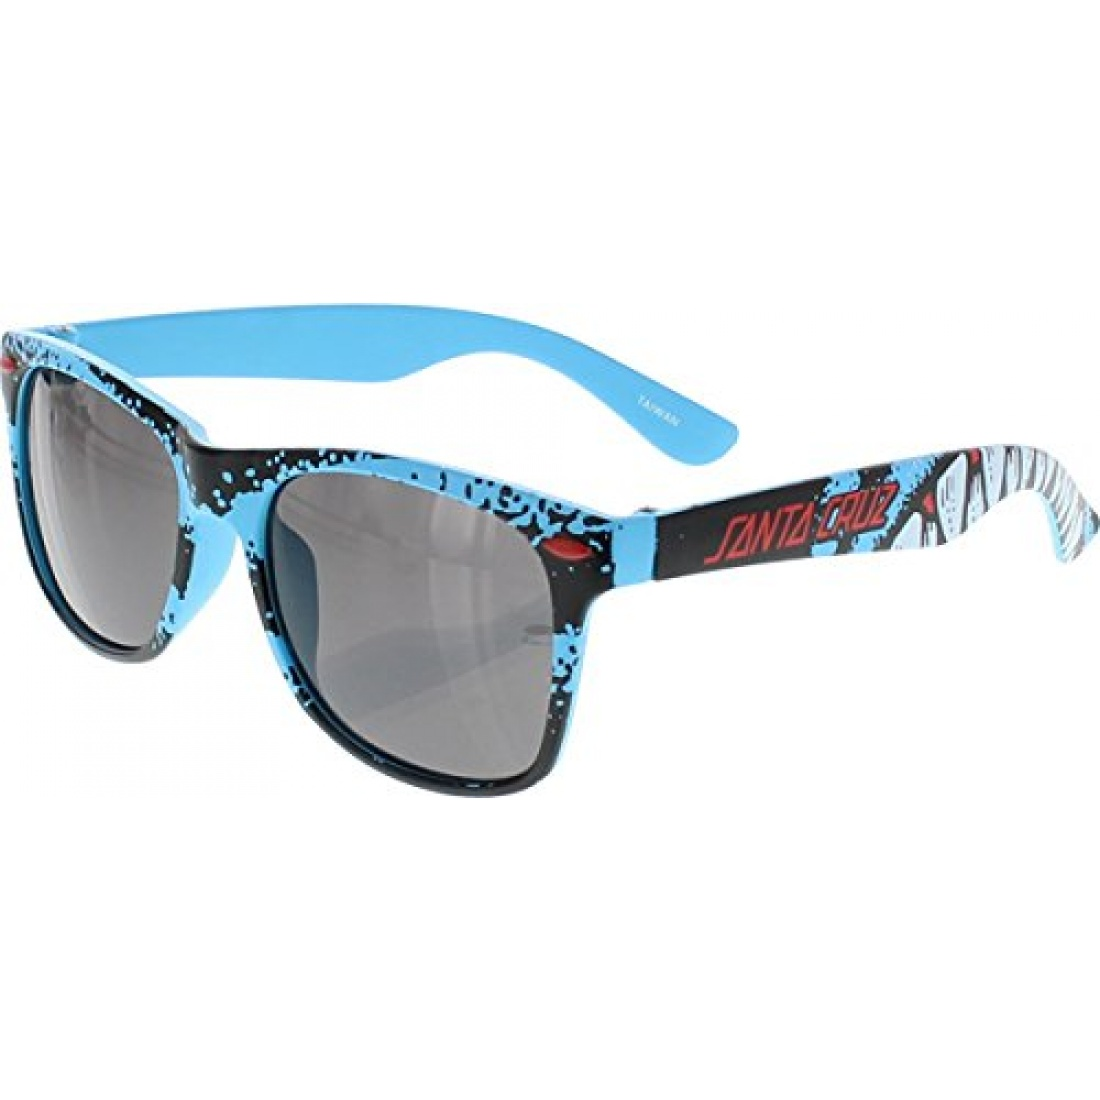 SCZ-Retro Shark Sunglasses Blue OS Unisex